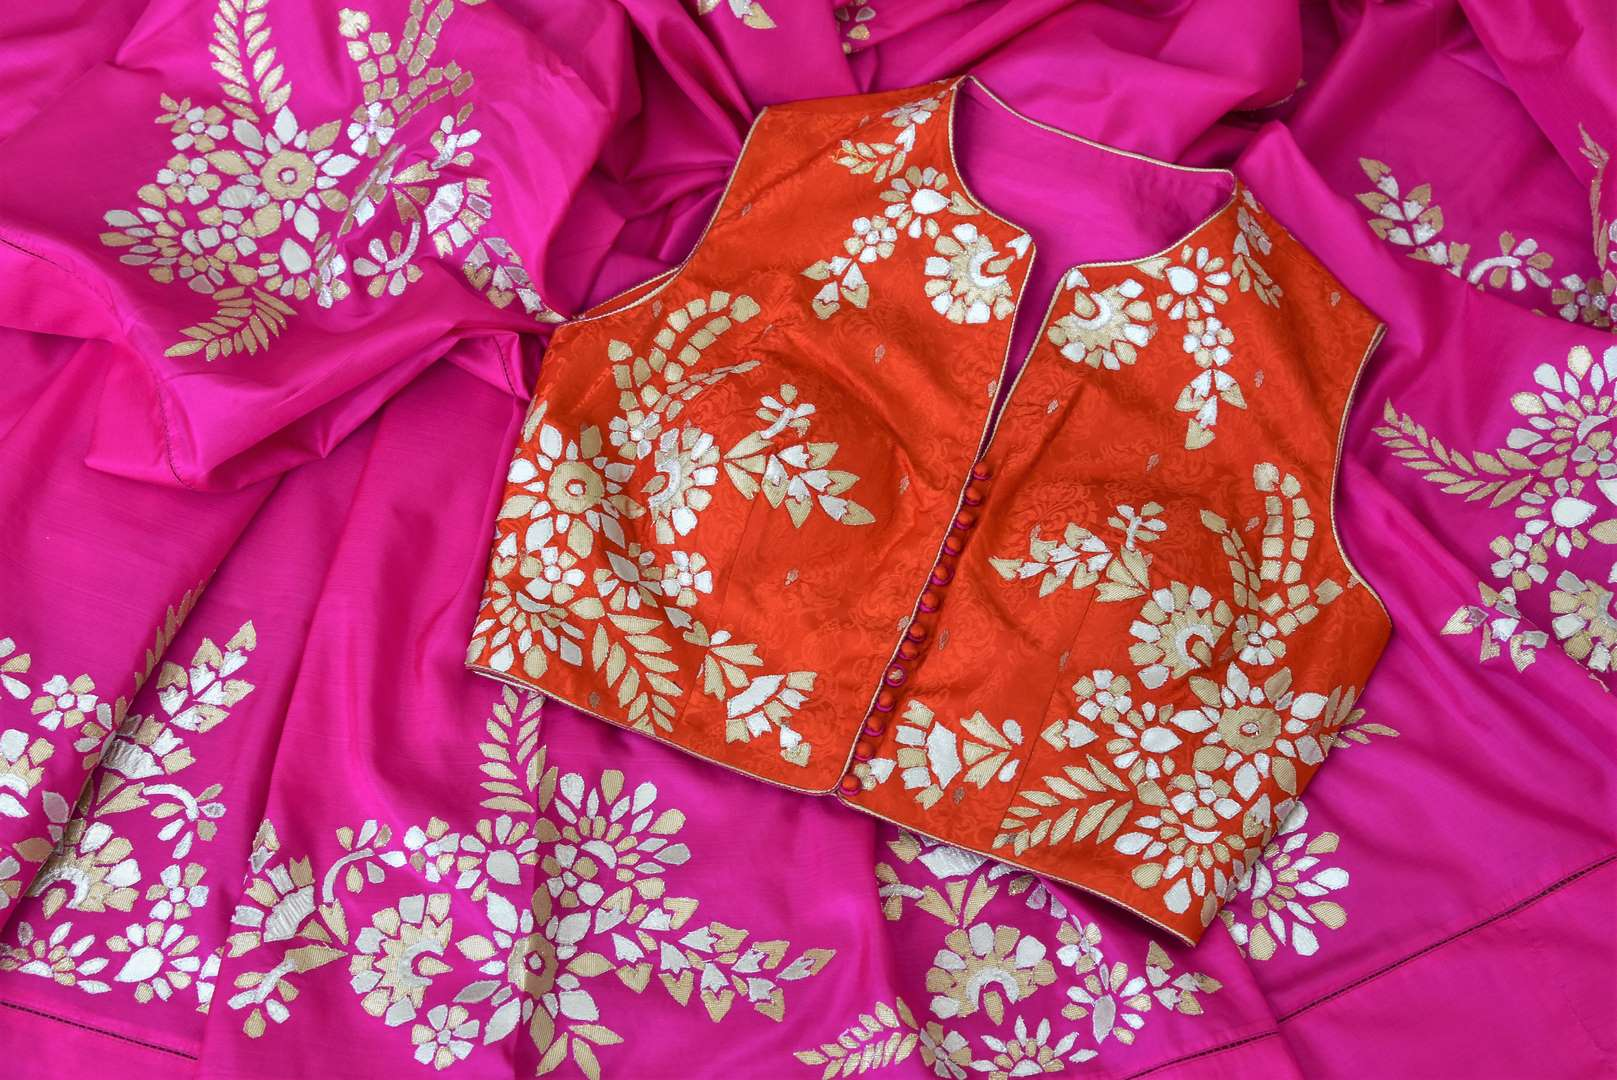 Pink applique work silk saree buy online in USA. The saree comes with a stunning red saree blouse which elevates the style quotient of the sari. If you are looking for Indian designer sarees in USA, then Pure Elegance clothing store is your one stop solution, shop now.-details